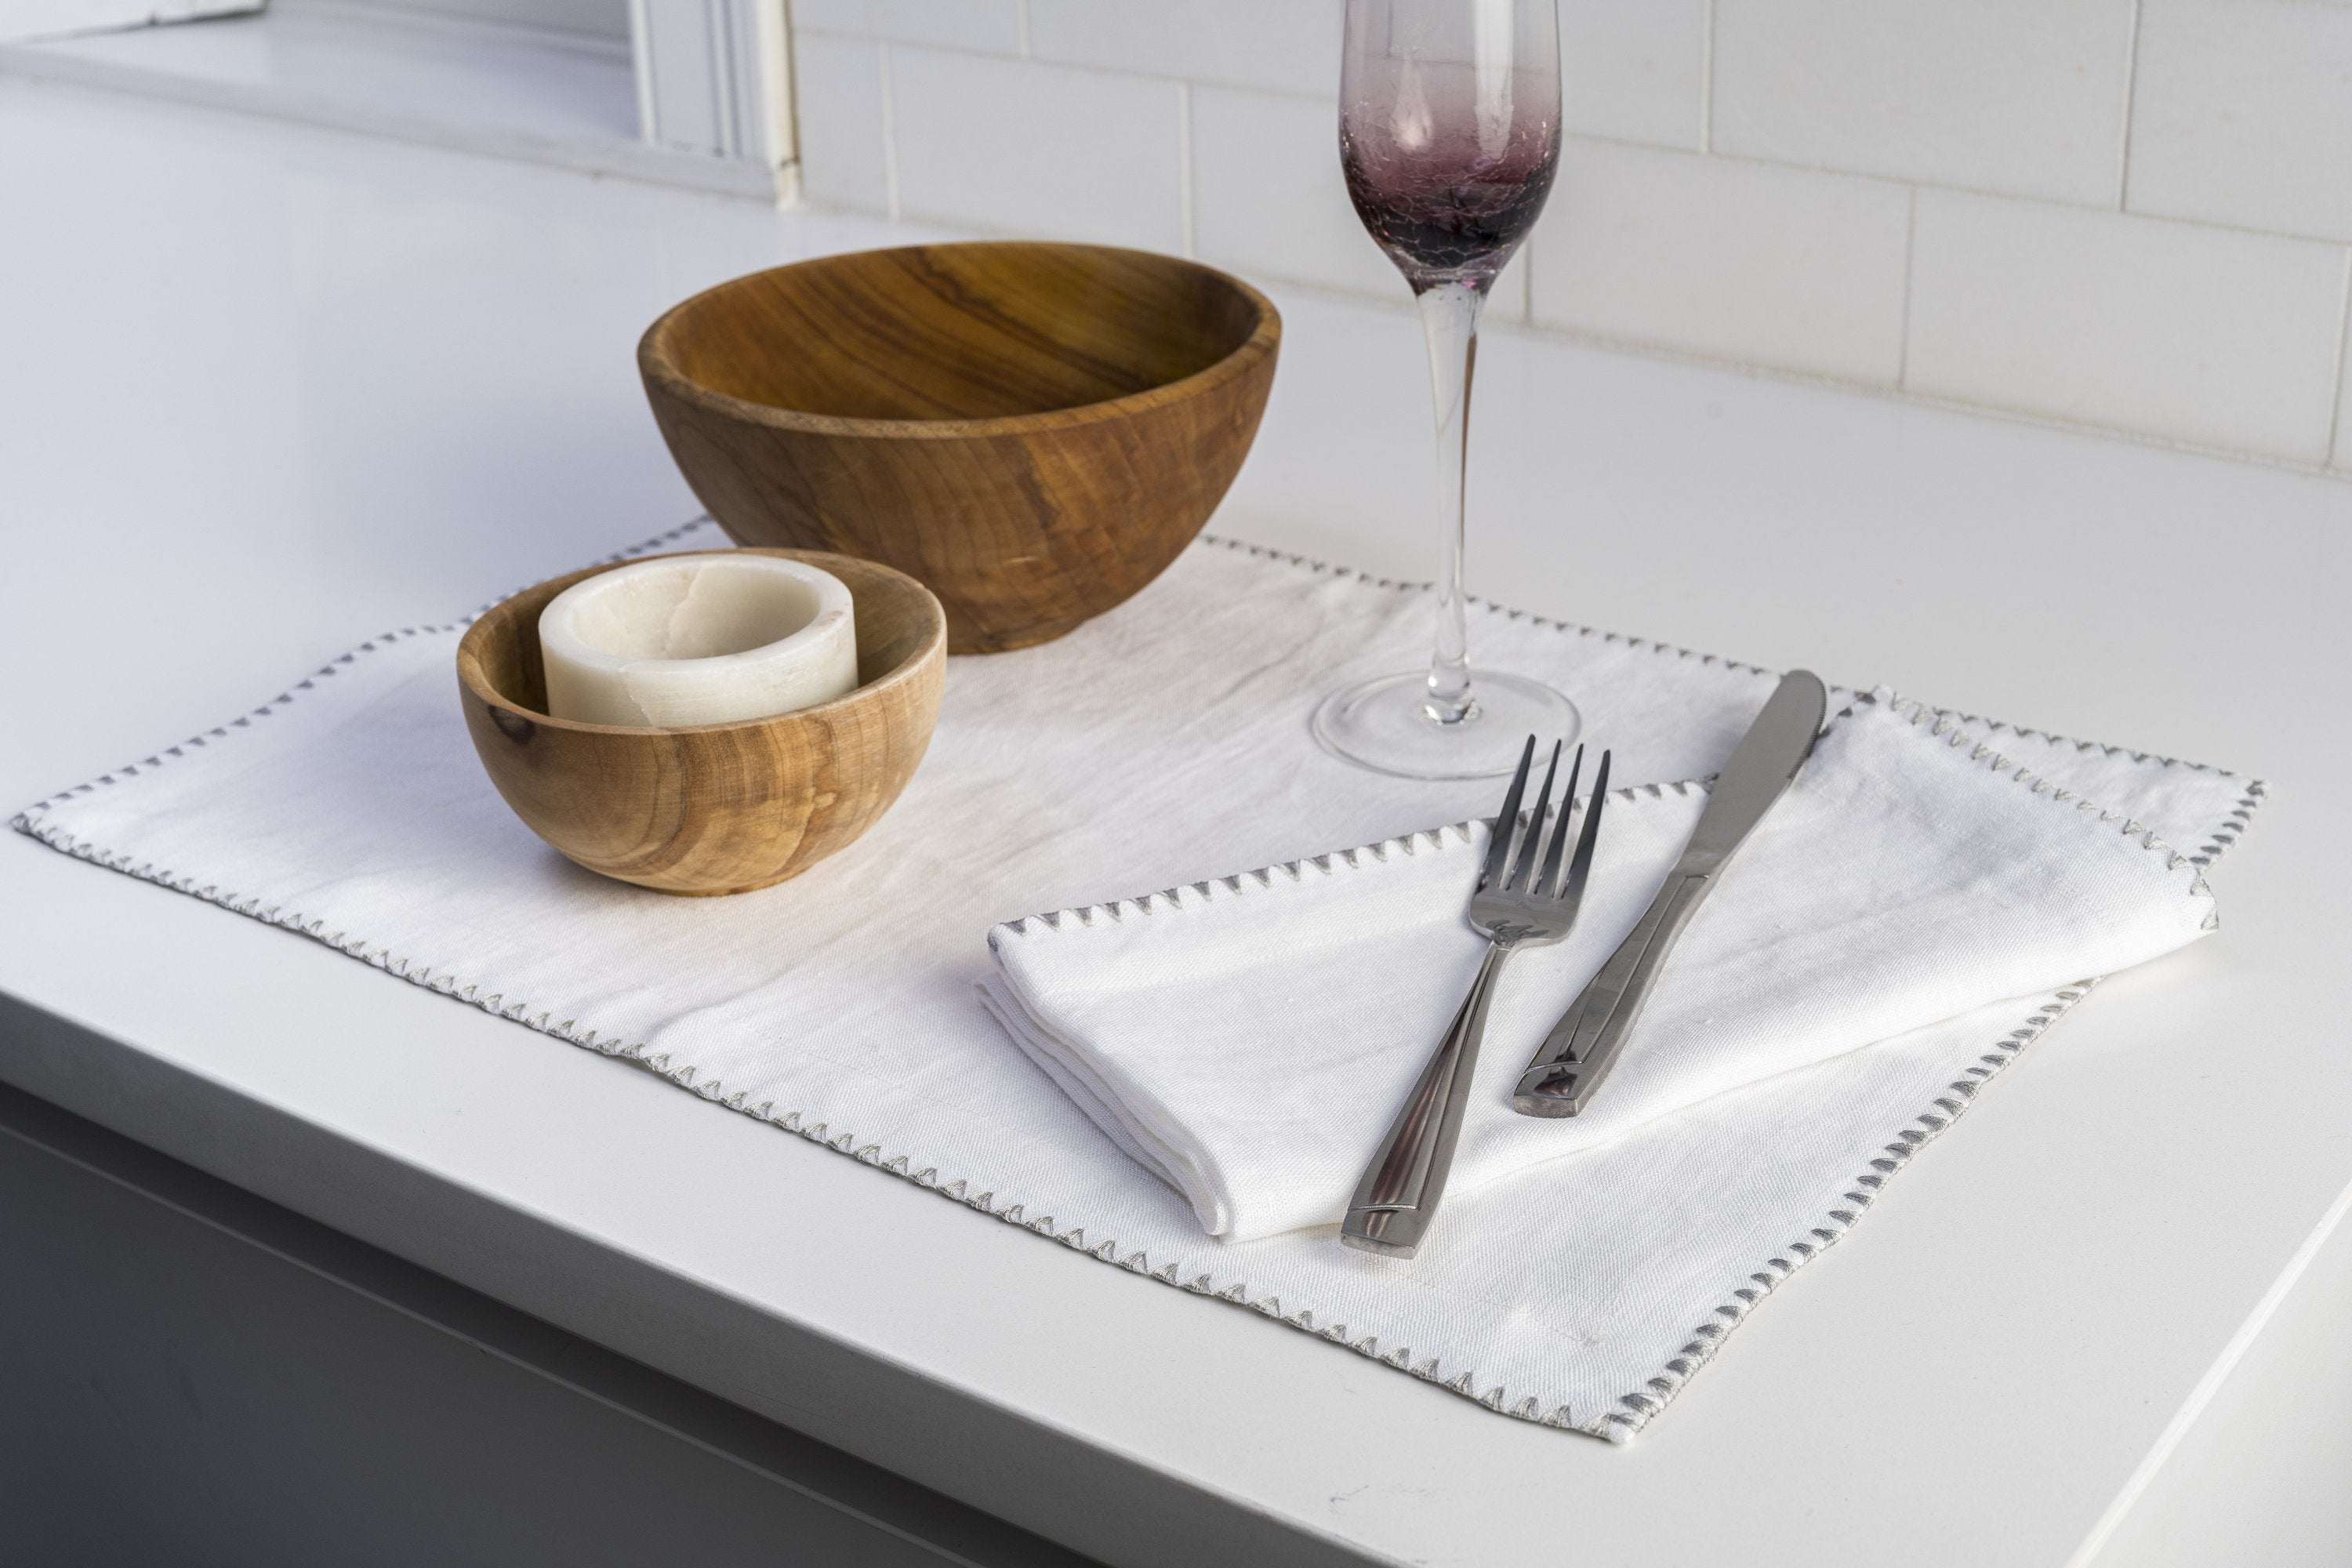 100% European Flax Linen Napkins With Merrow Edge Stitching (Set of 4) - Veri Vera